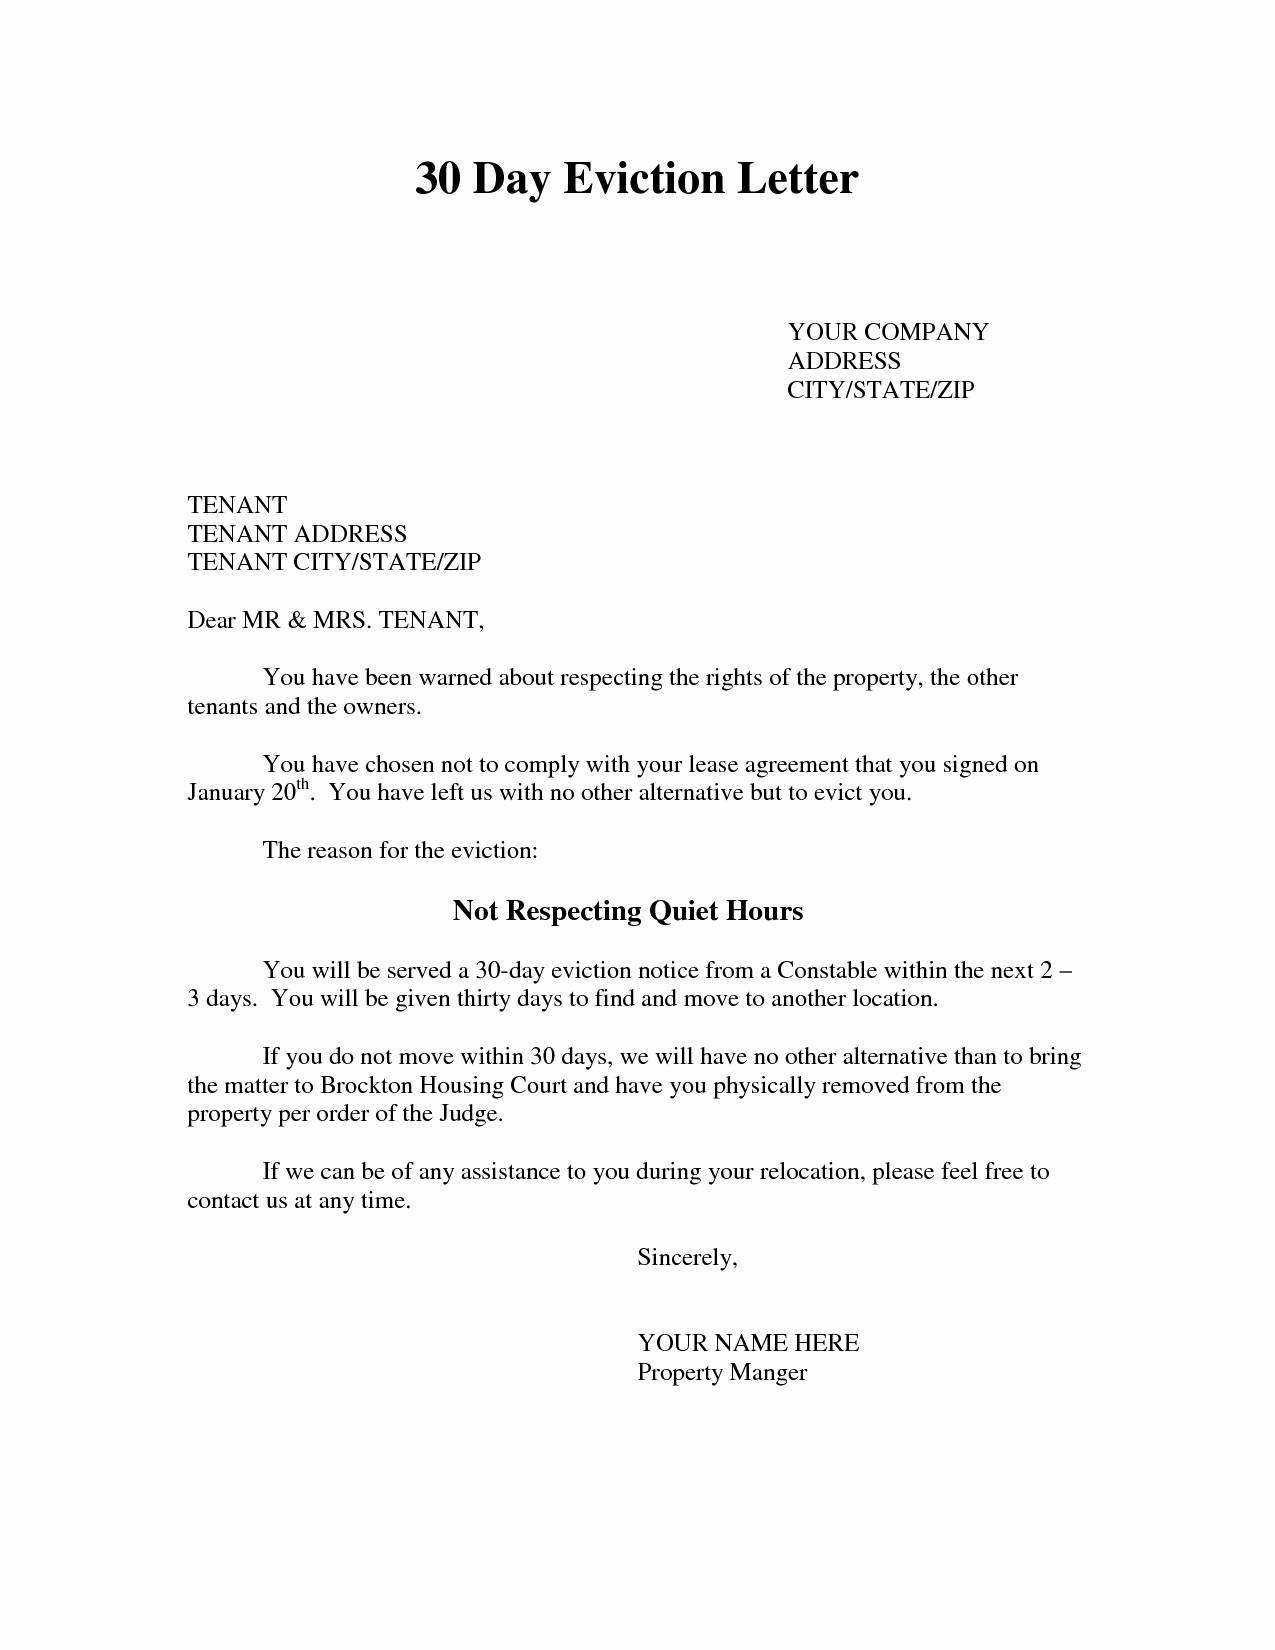 Tenant Eviction Letter Template - Tenant Eviction Letter Template Fresh Eviction Notice Template